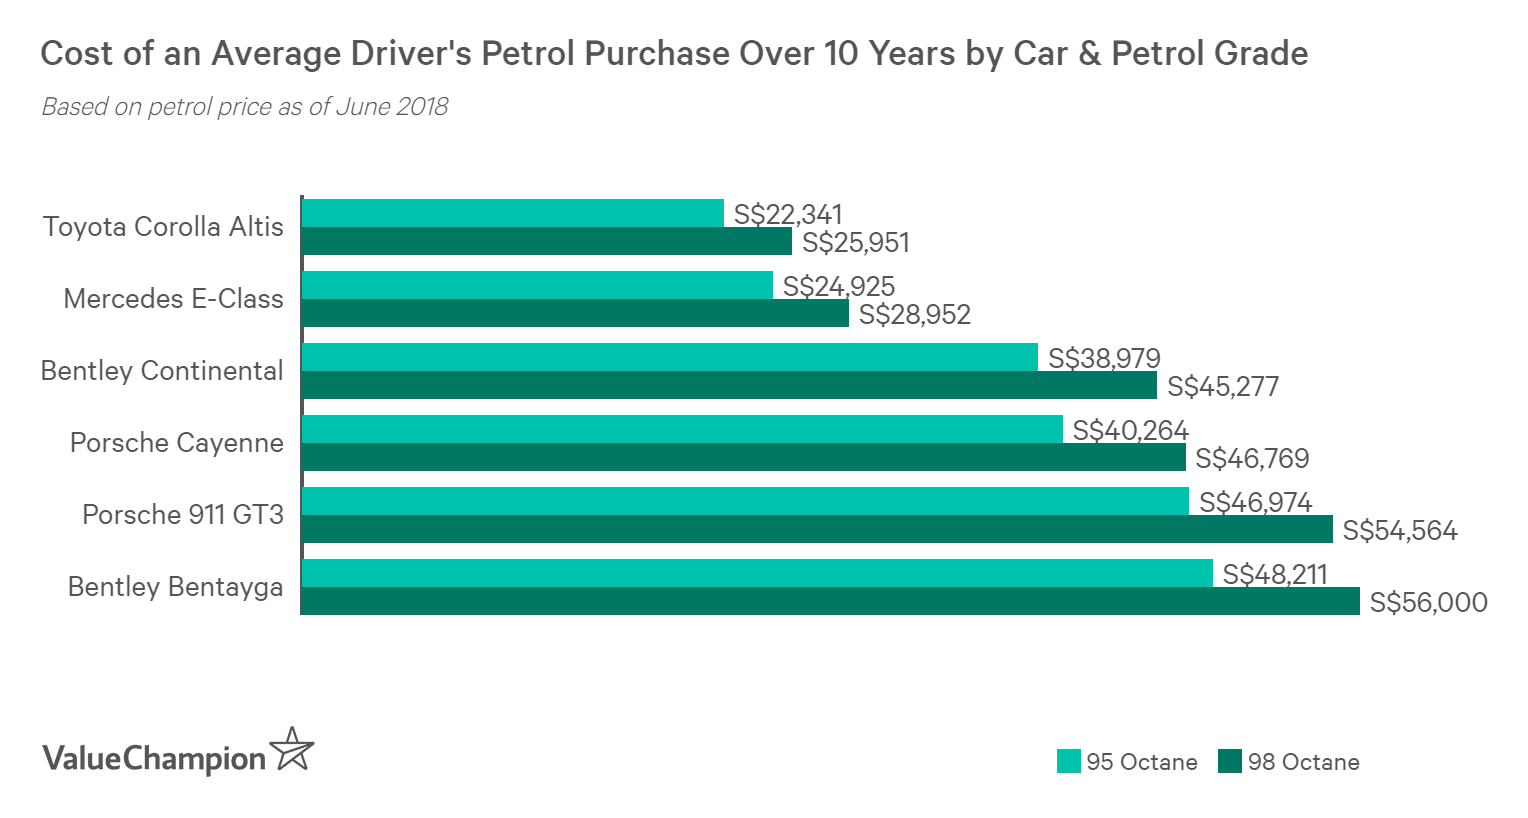 An average car can consume around S$25,000 worth of petrol over 10 years, while high-end cars can consume S$40,000 or more